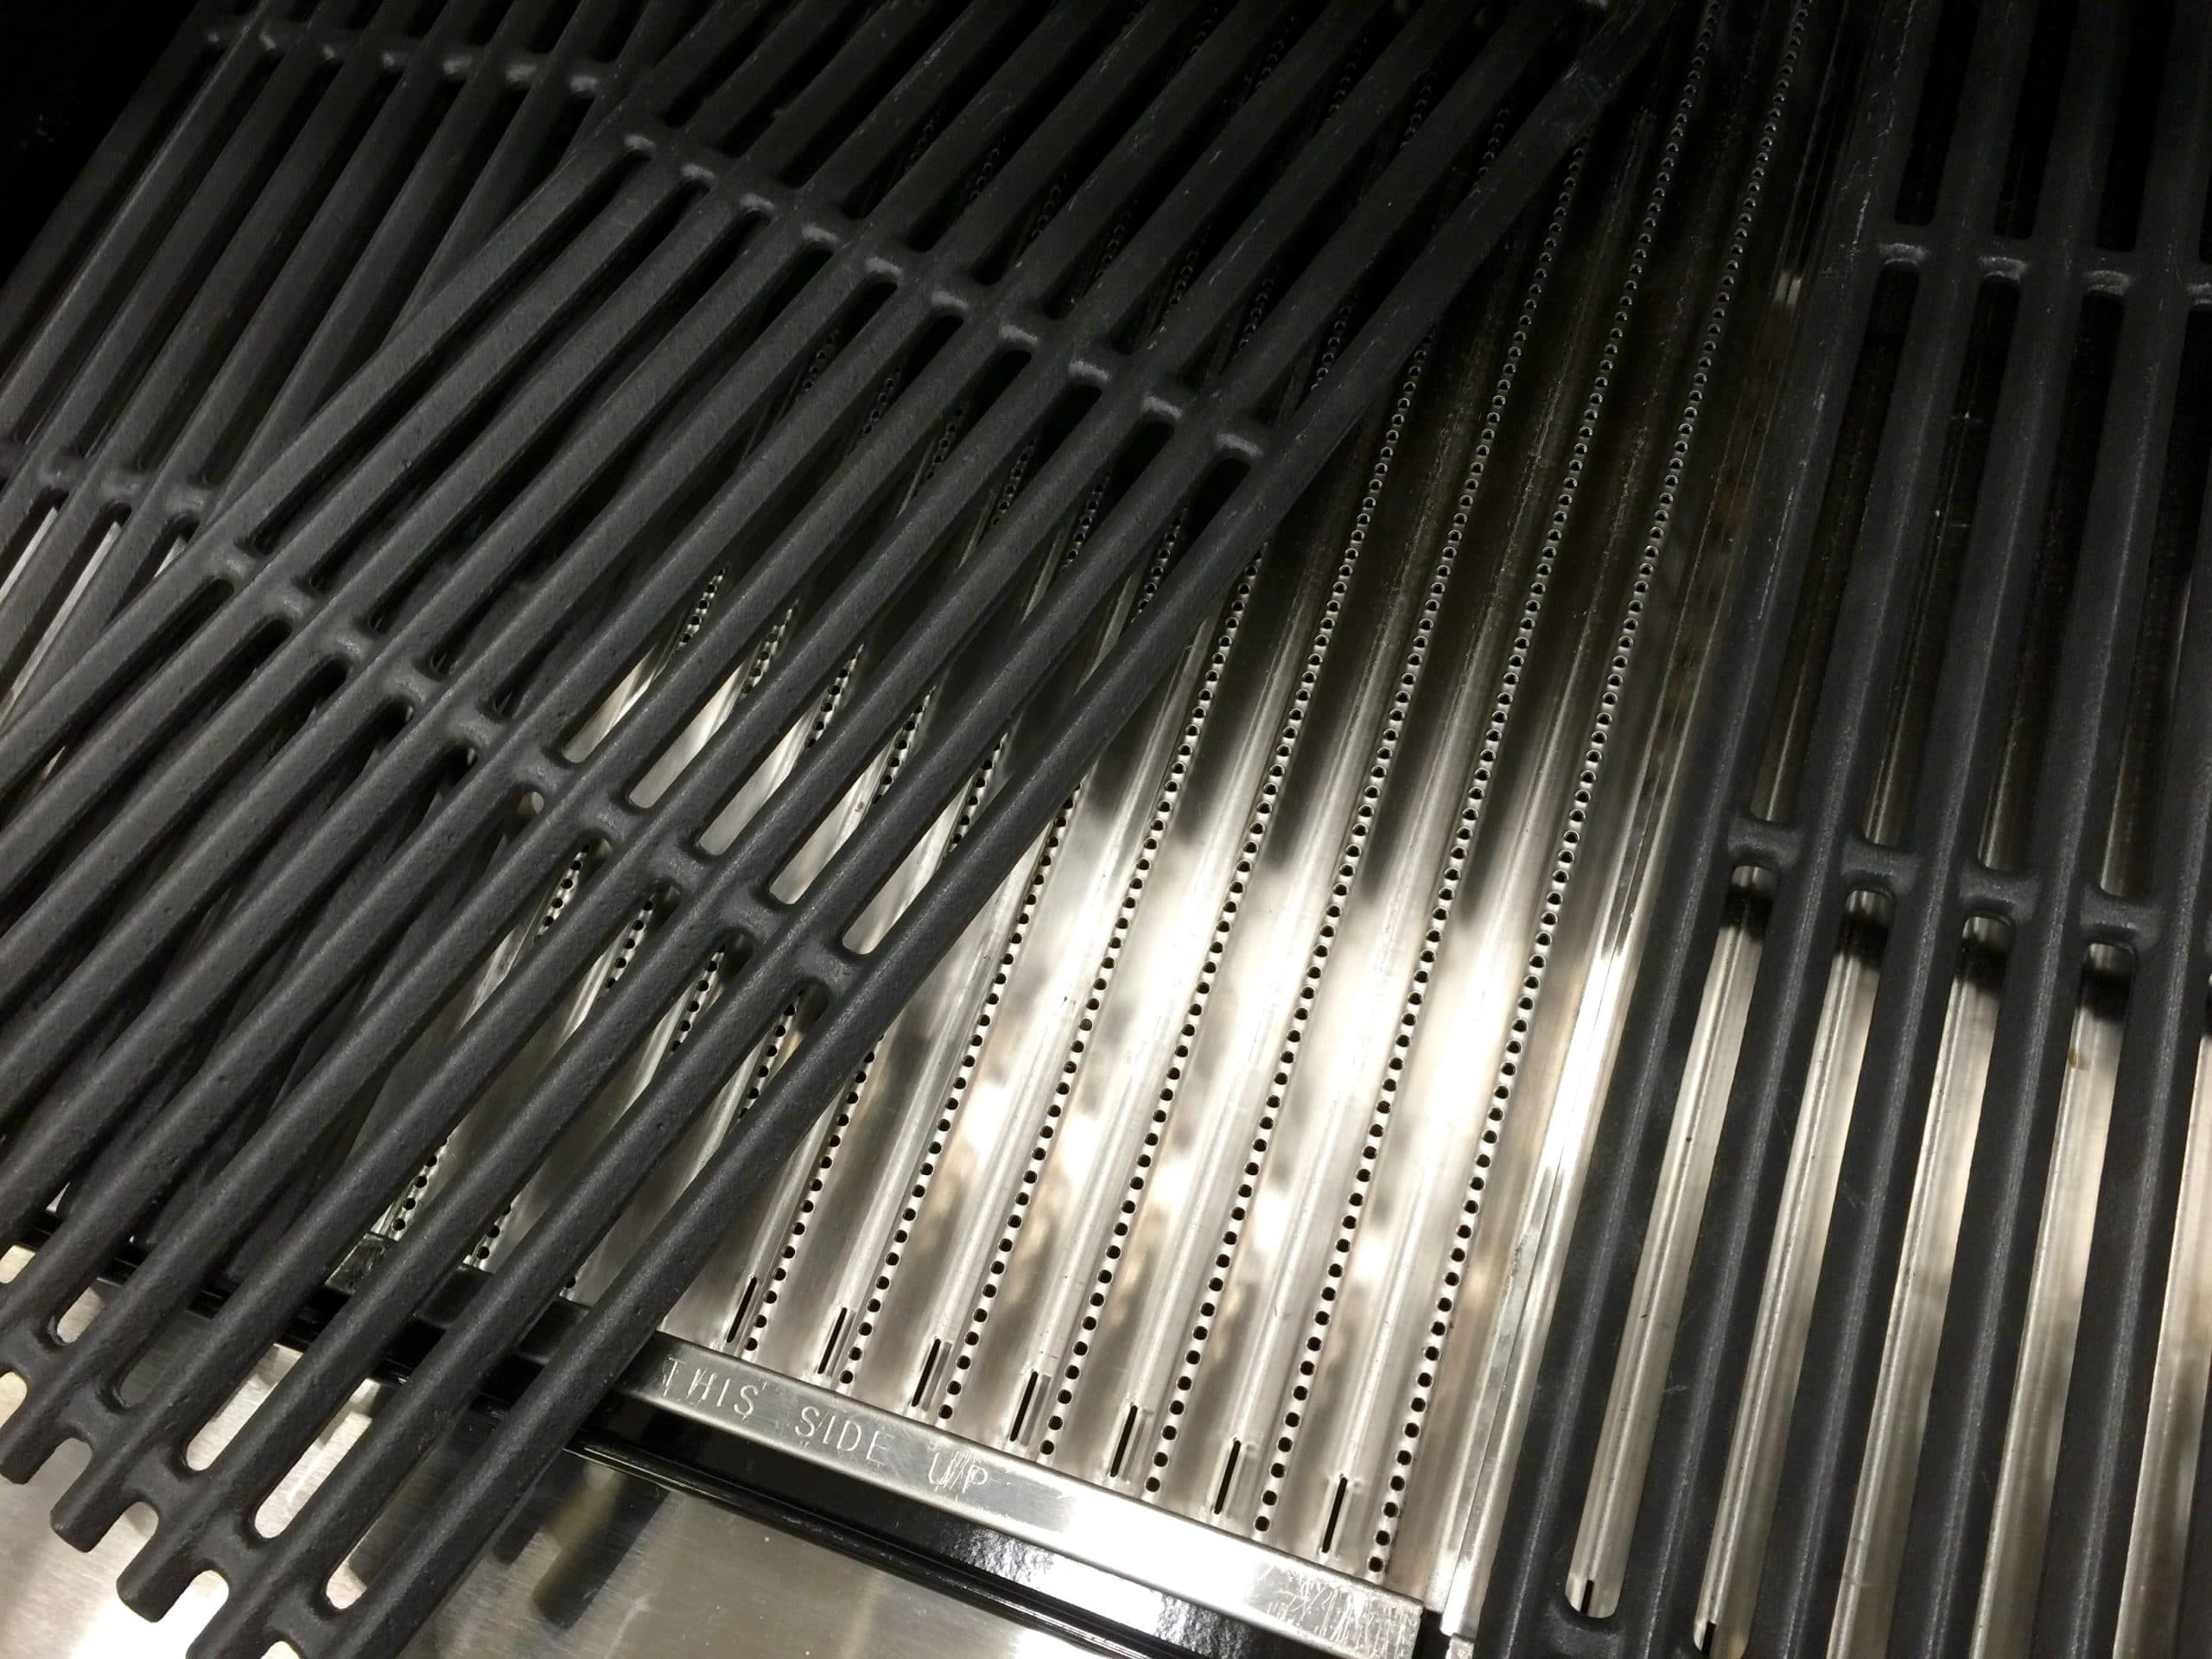 Char Broil TRU Infrared Grill Plates